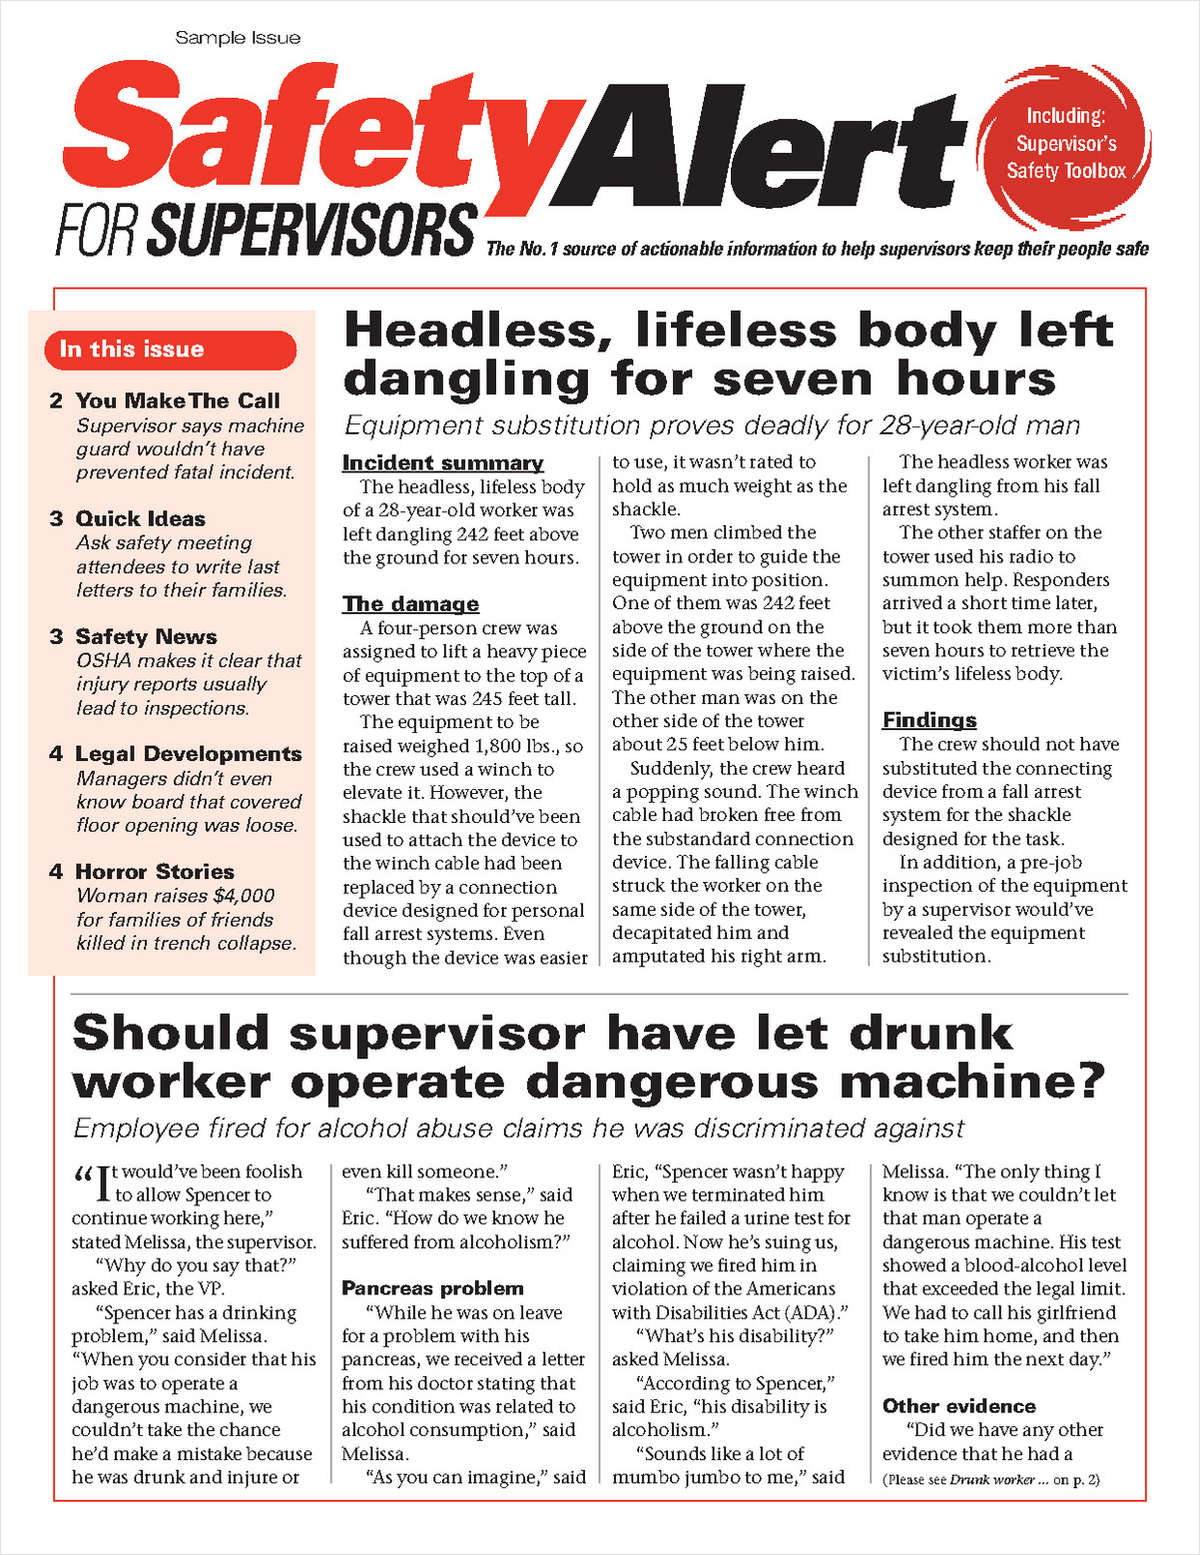 Safety Alert for Supervisors